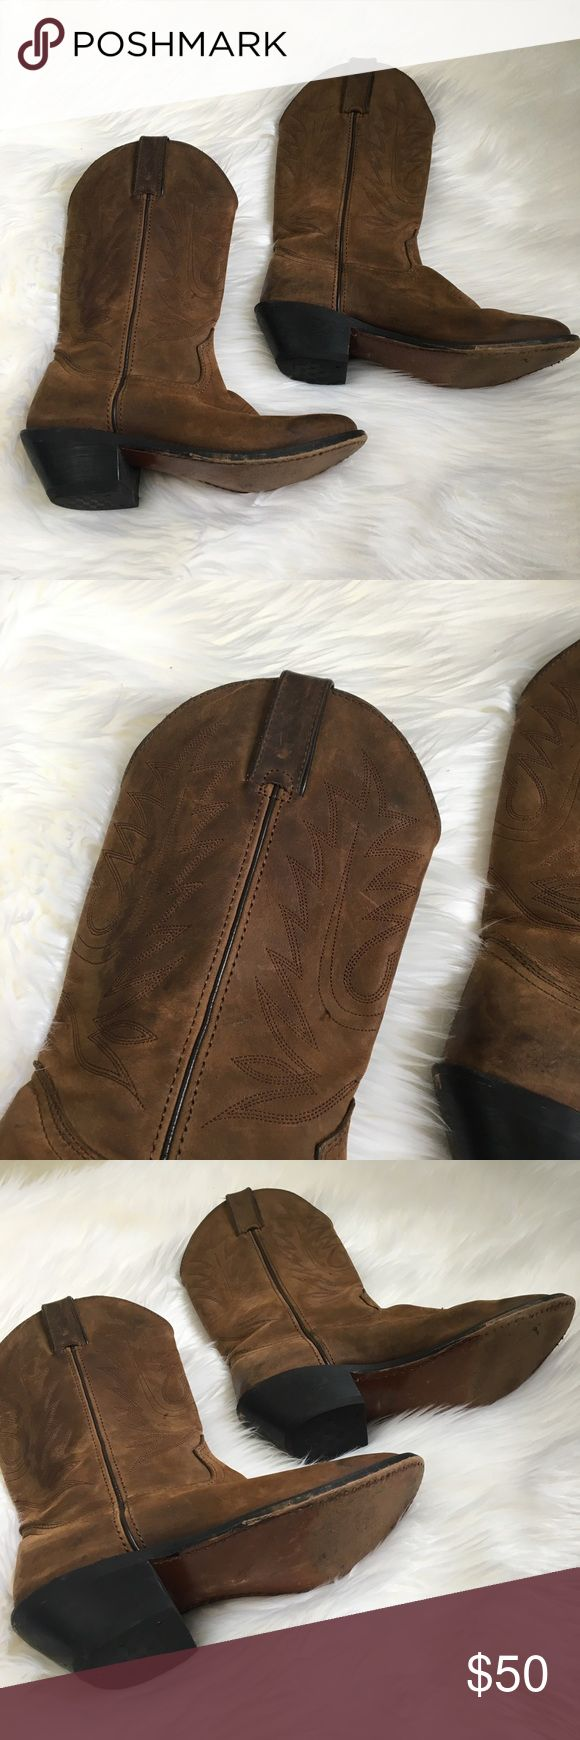 """DURANGO Women's Brown embroidered cowboy boots Pre-owned. In good condition. Shows sign of wear. Heel height: 2"""". Size 6M, EU 37. Durango Shoes Heeled Boots"""